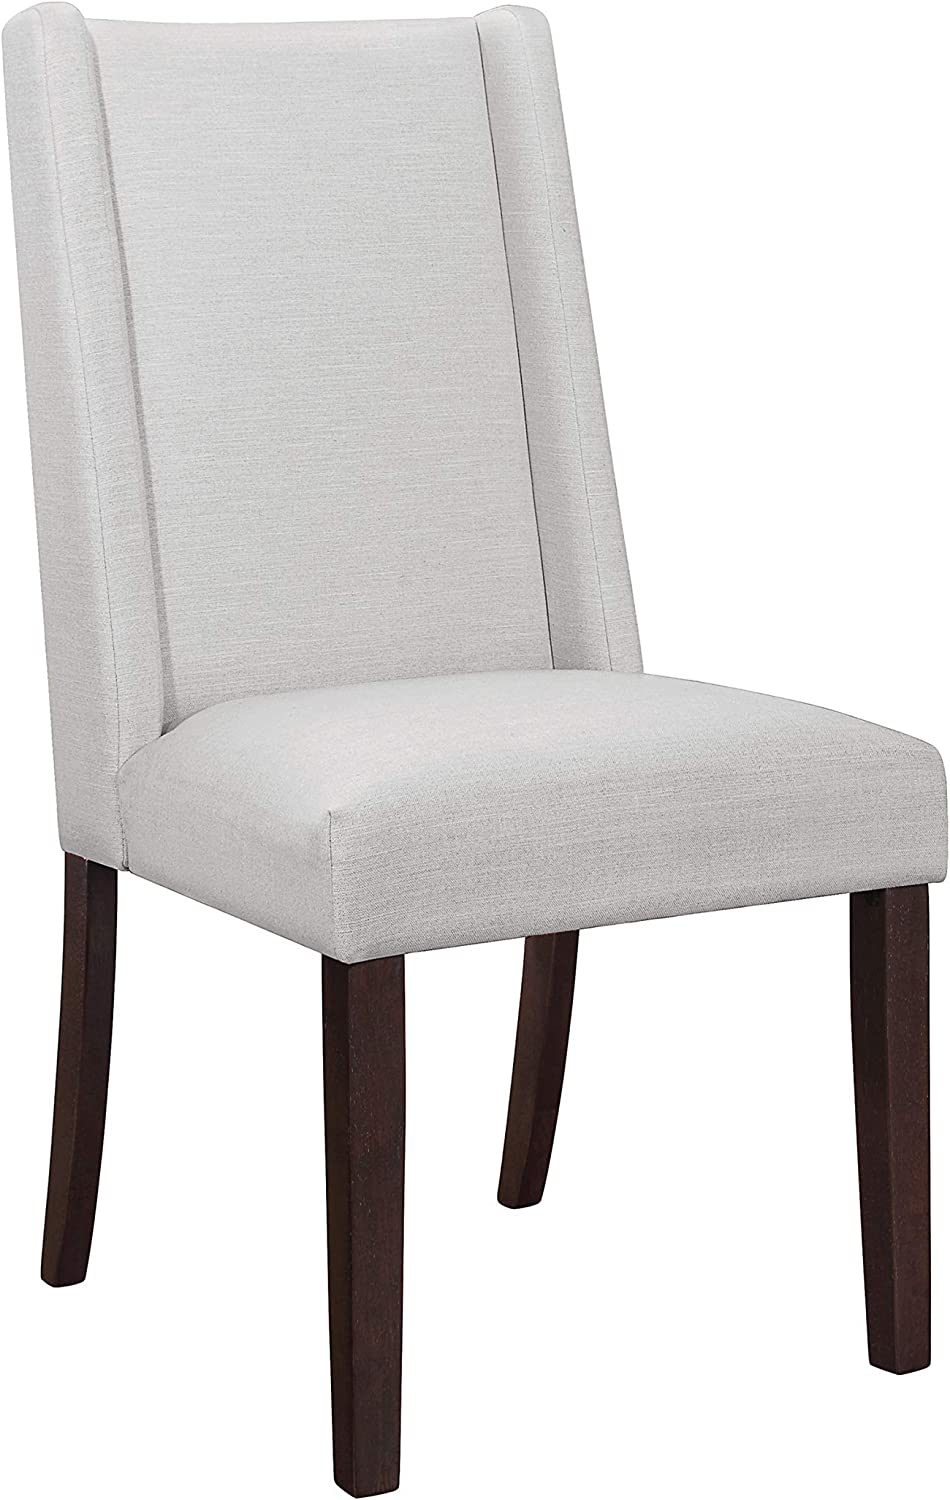 Coaster Home Furnishings Searcy Upholstered Parson Linen (Set of 2) Dining Chair